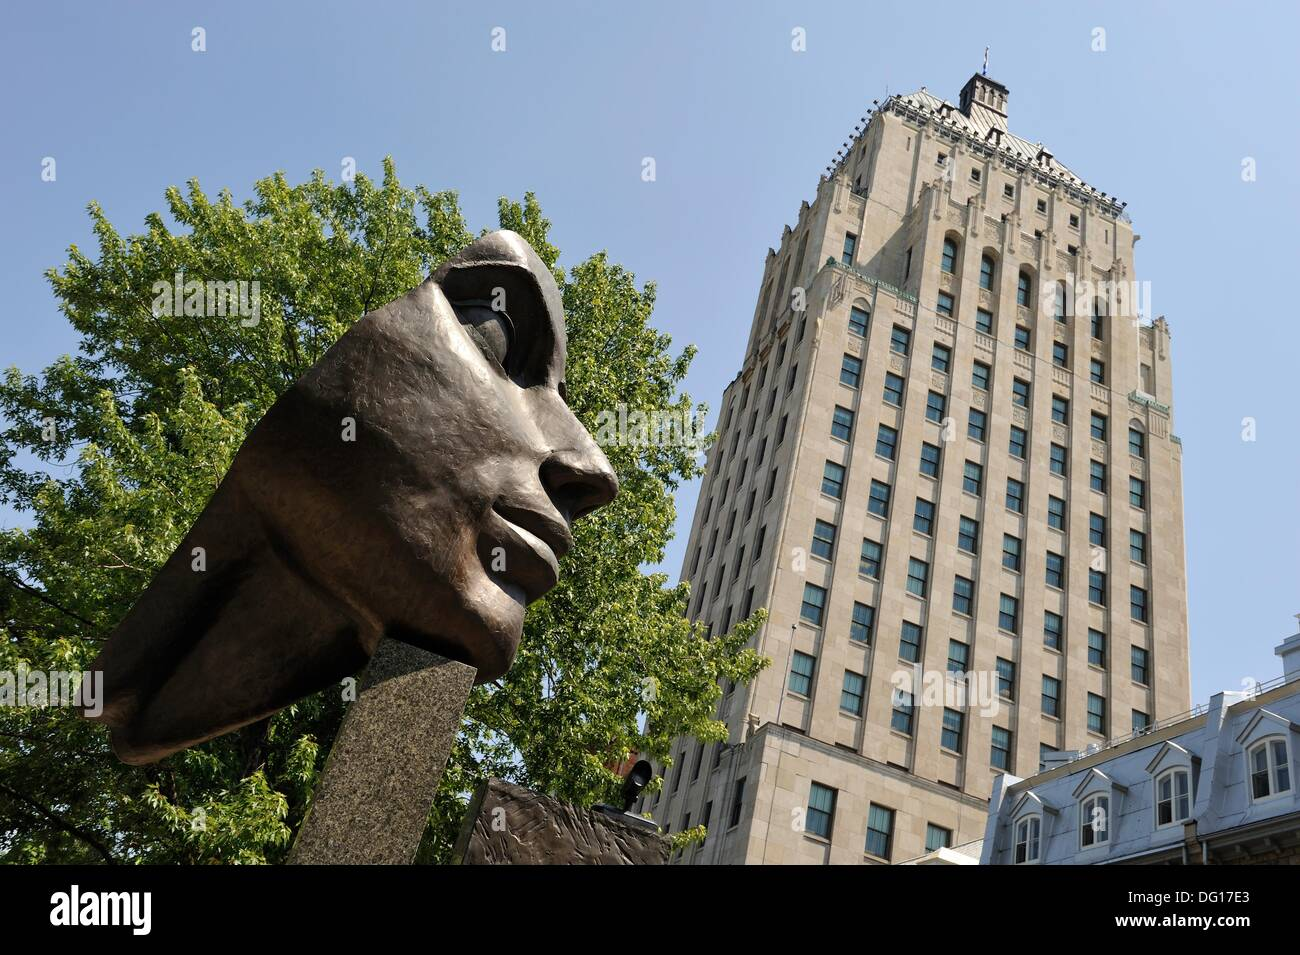 Sculpture down the Edifice Price, Quebec city, Province of Quebec, Canada, North America - Stock Image